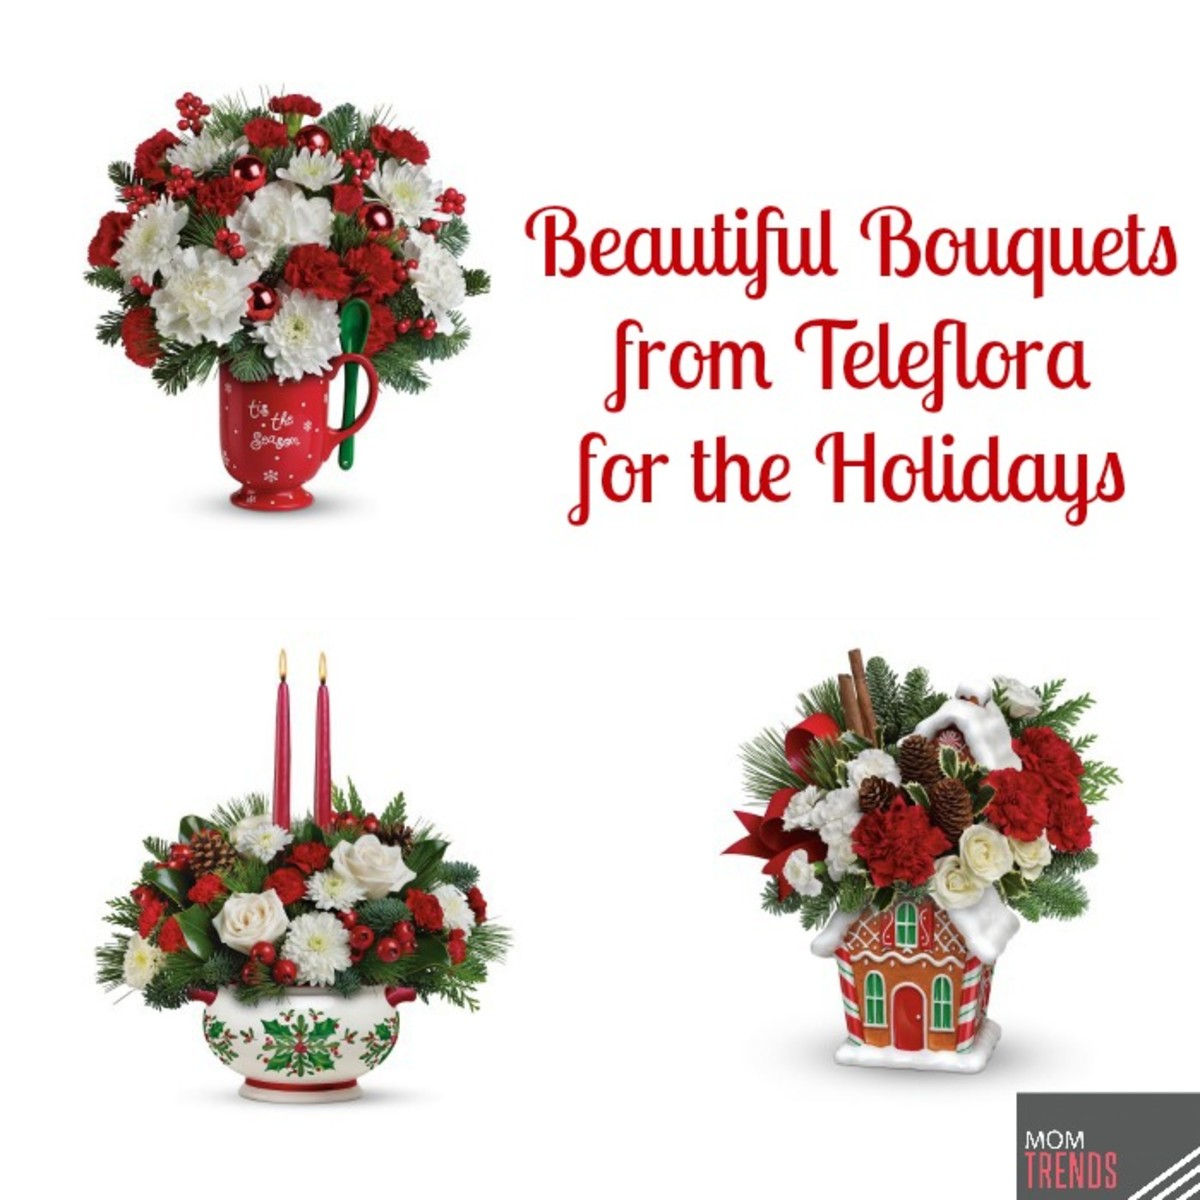 Teleflora for the Holidays